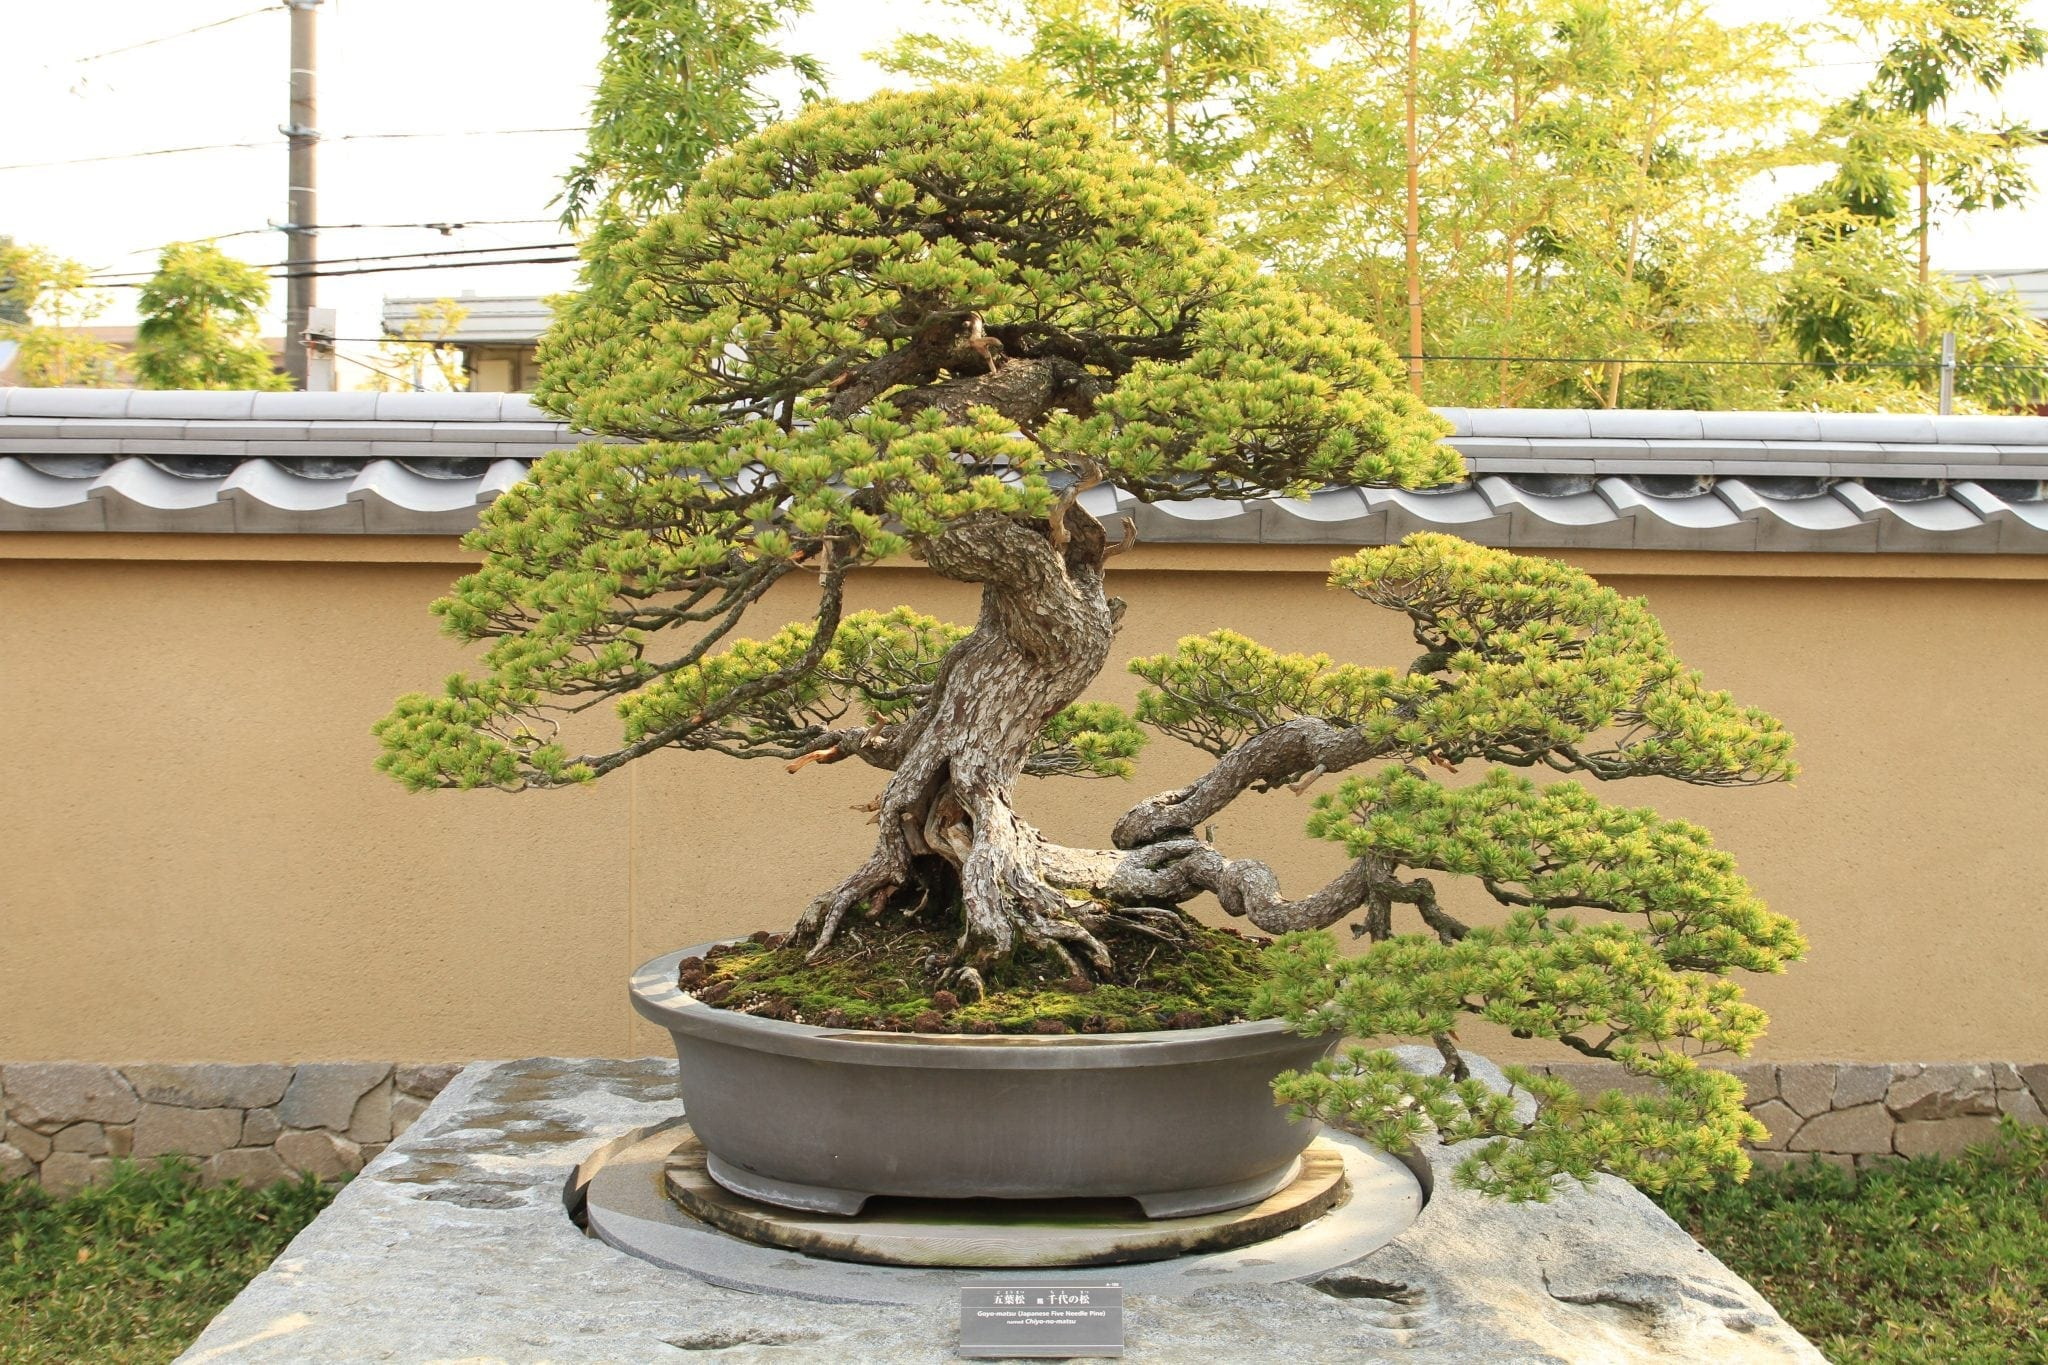 How To Care For Outdoor Bonsai Trees Bonsai Tree Gardener